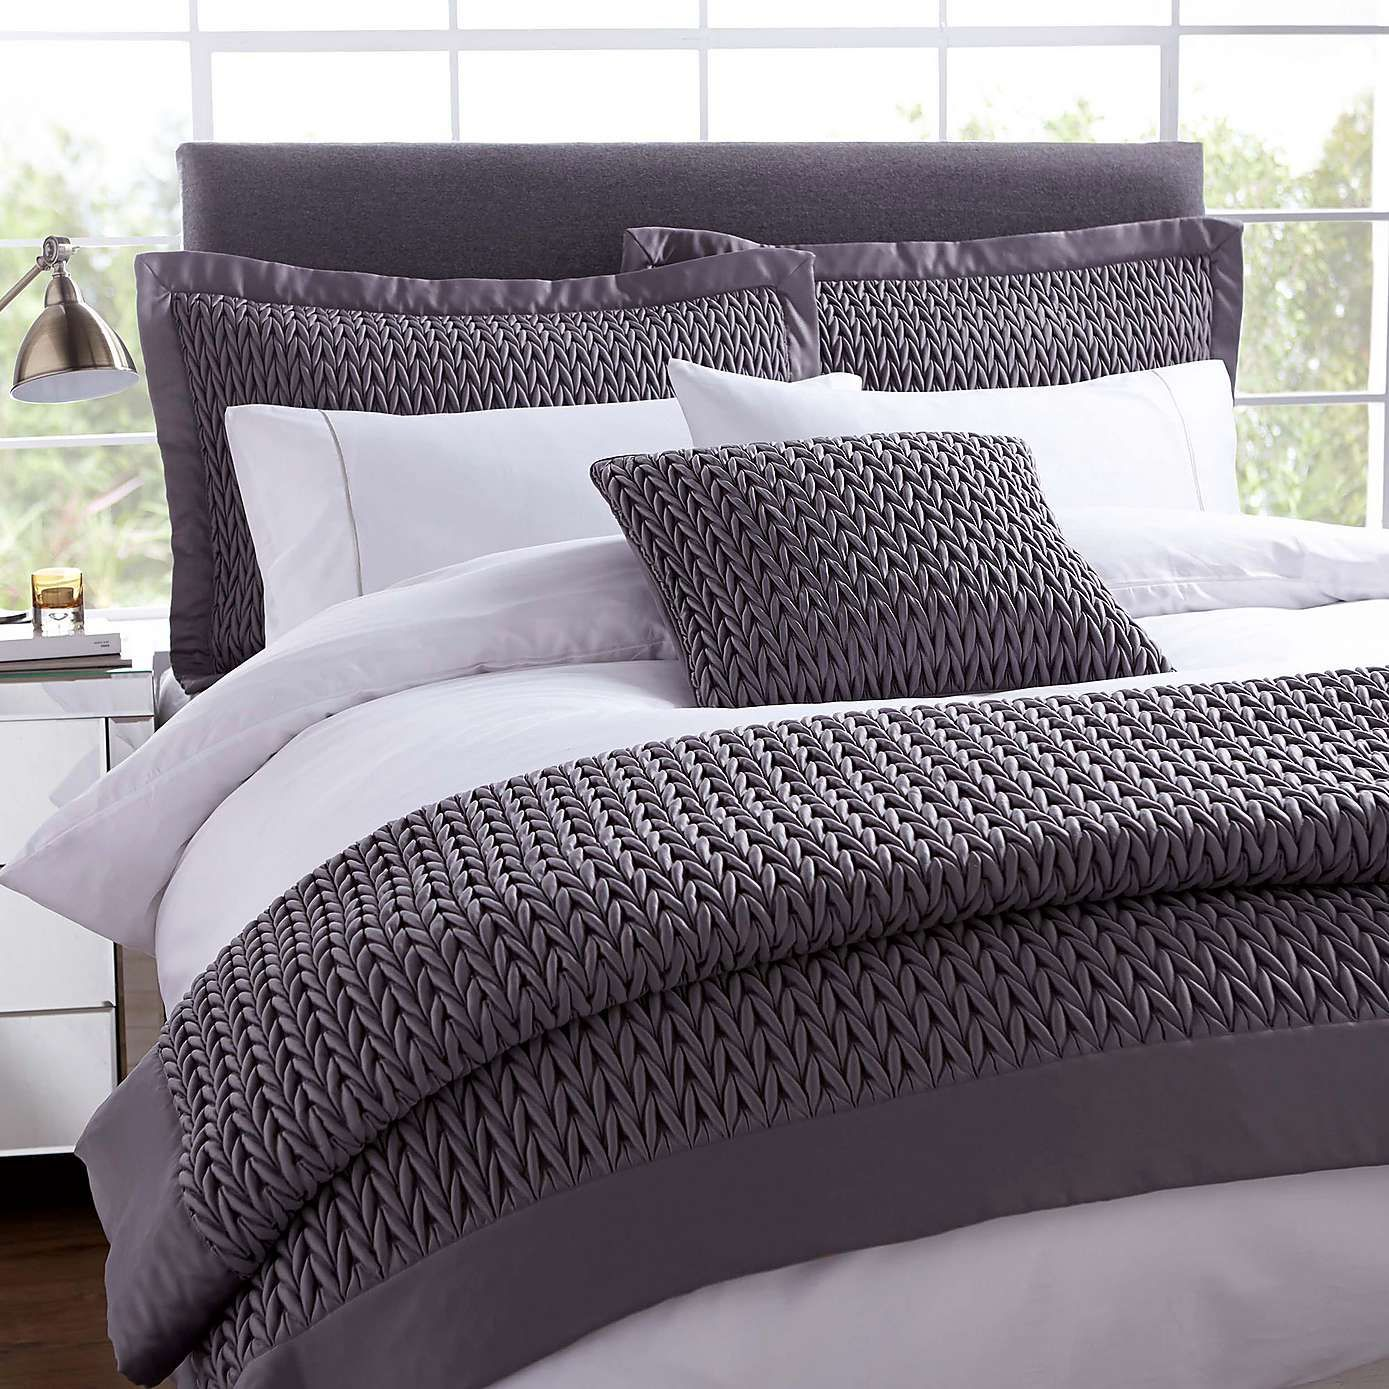 Hotel Charcoal Piccadilly Bedspread Dunelm Bed Spreads